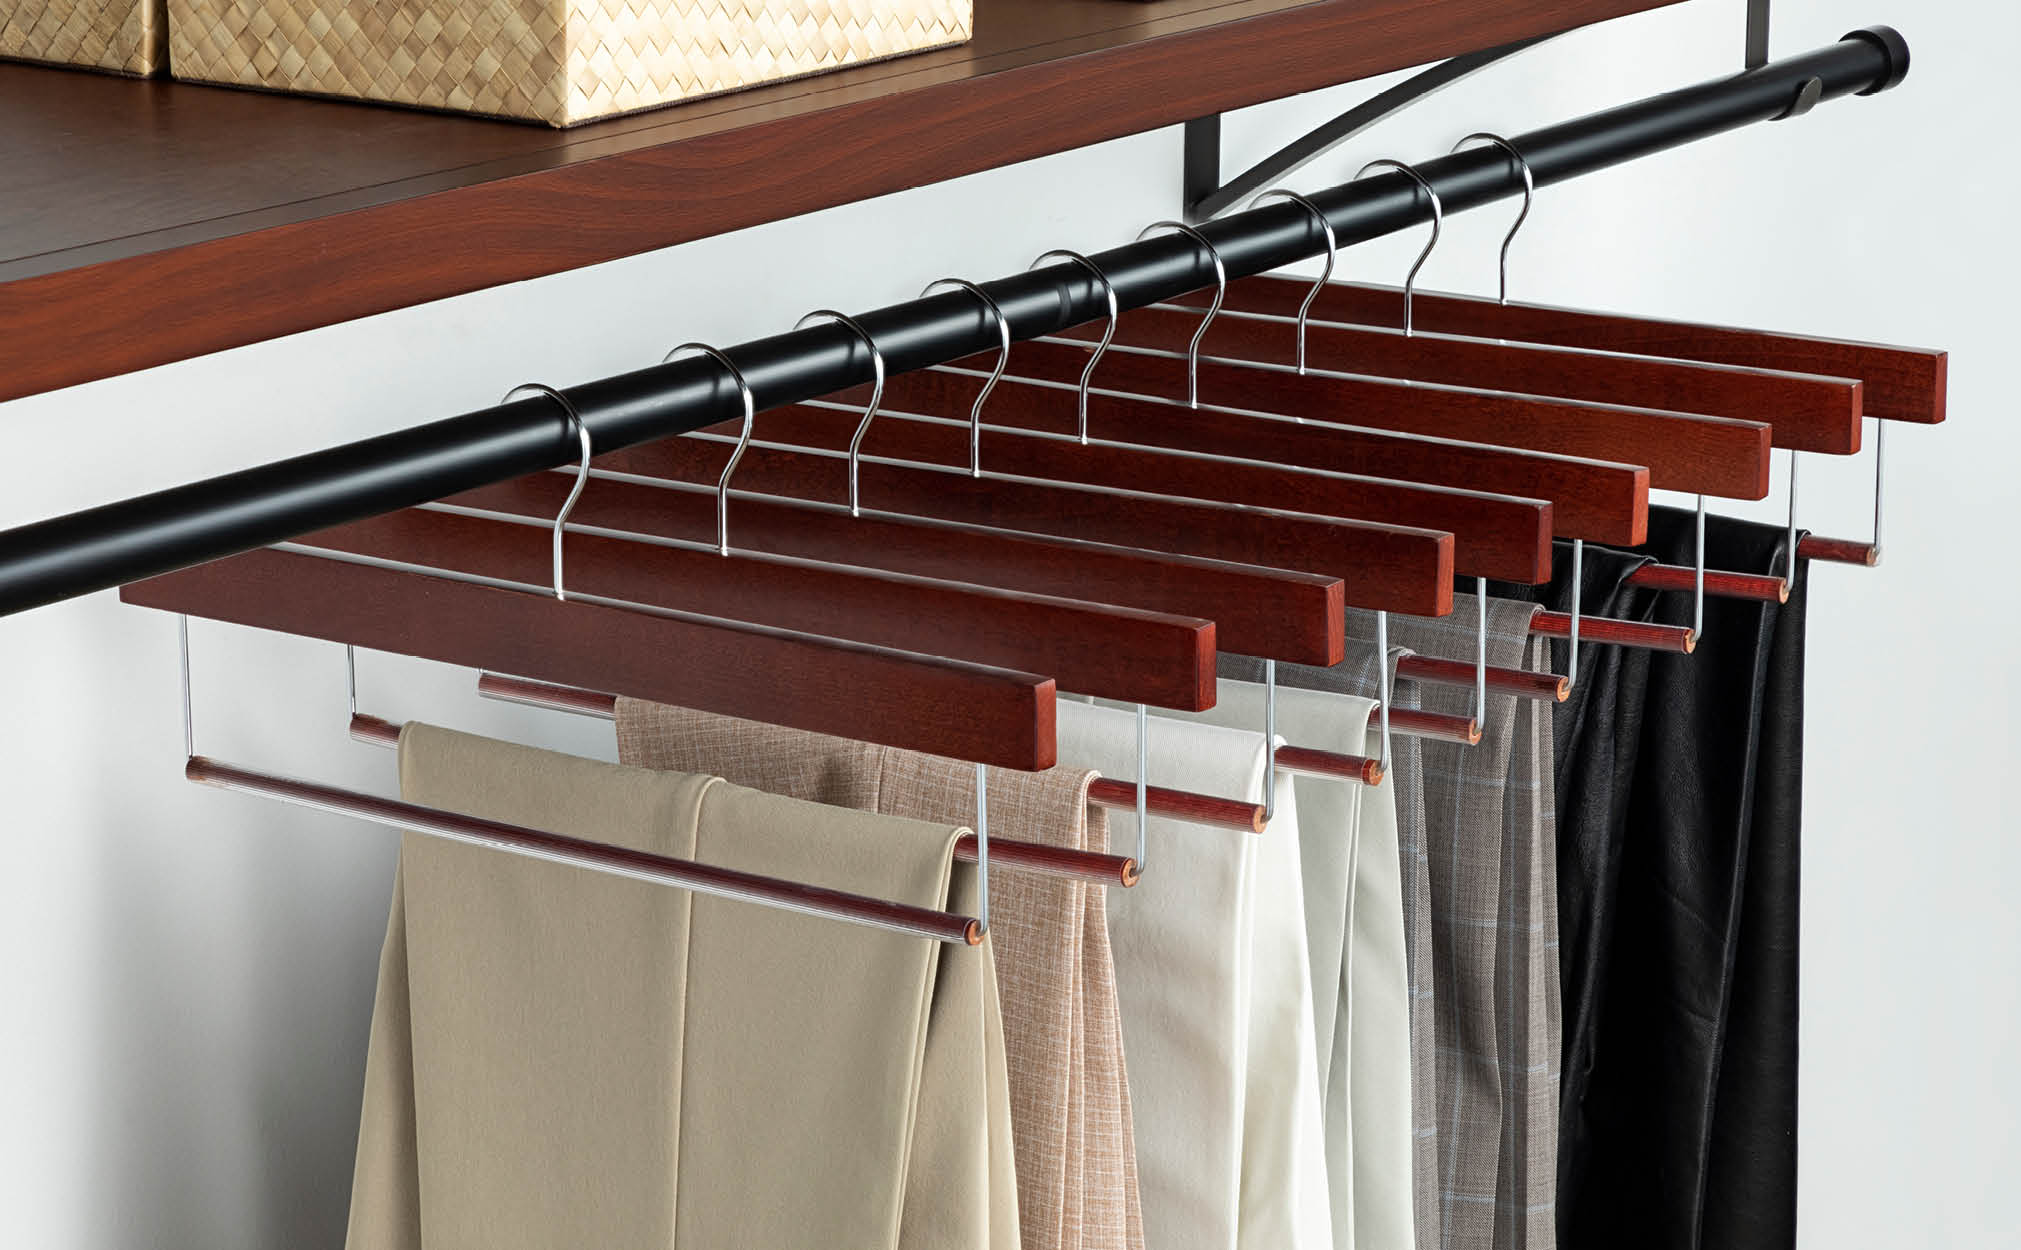 10-Pack Cherry Wooden Pant Hanger with Hanging Bar